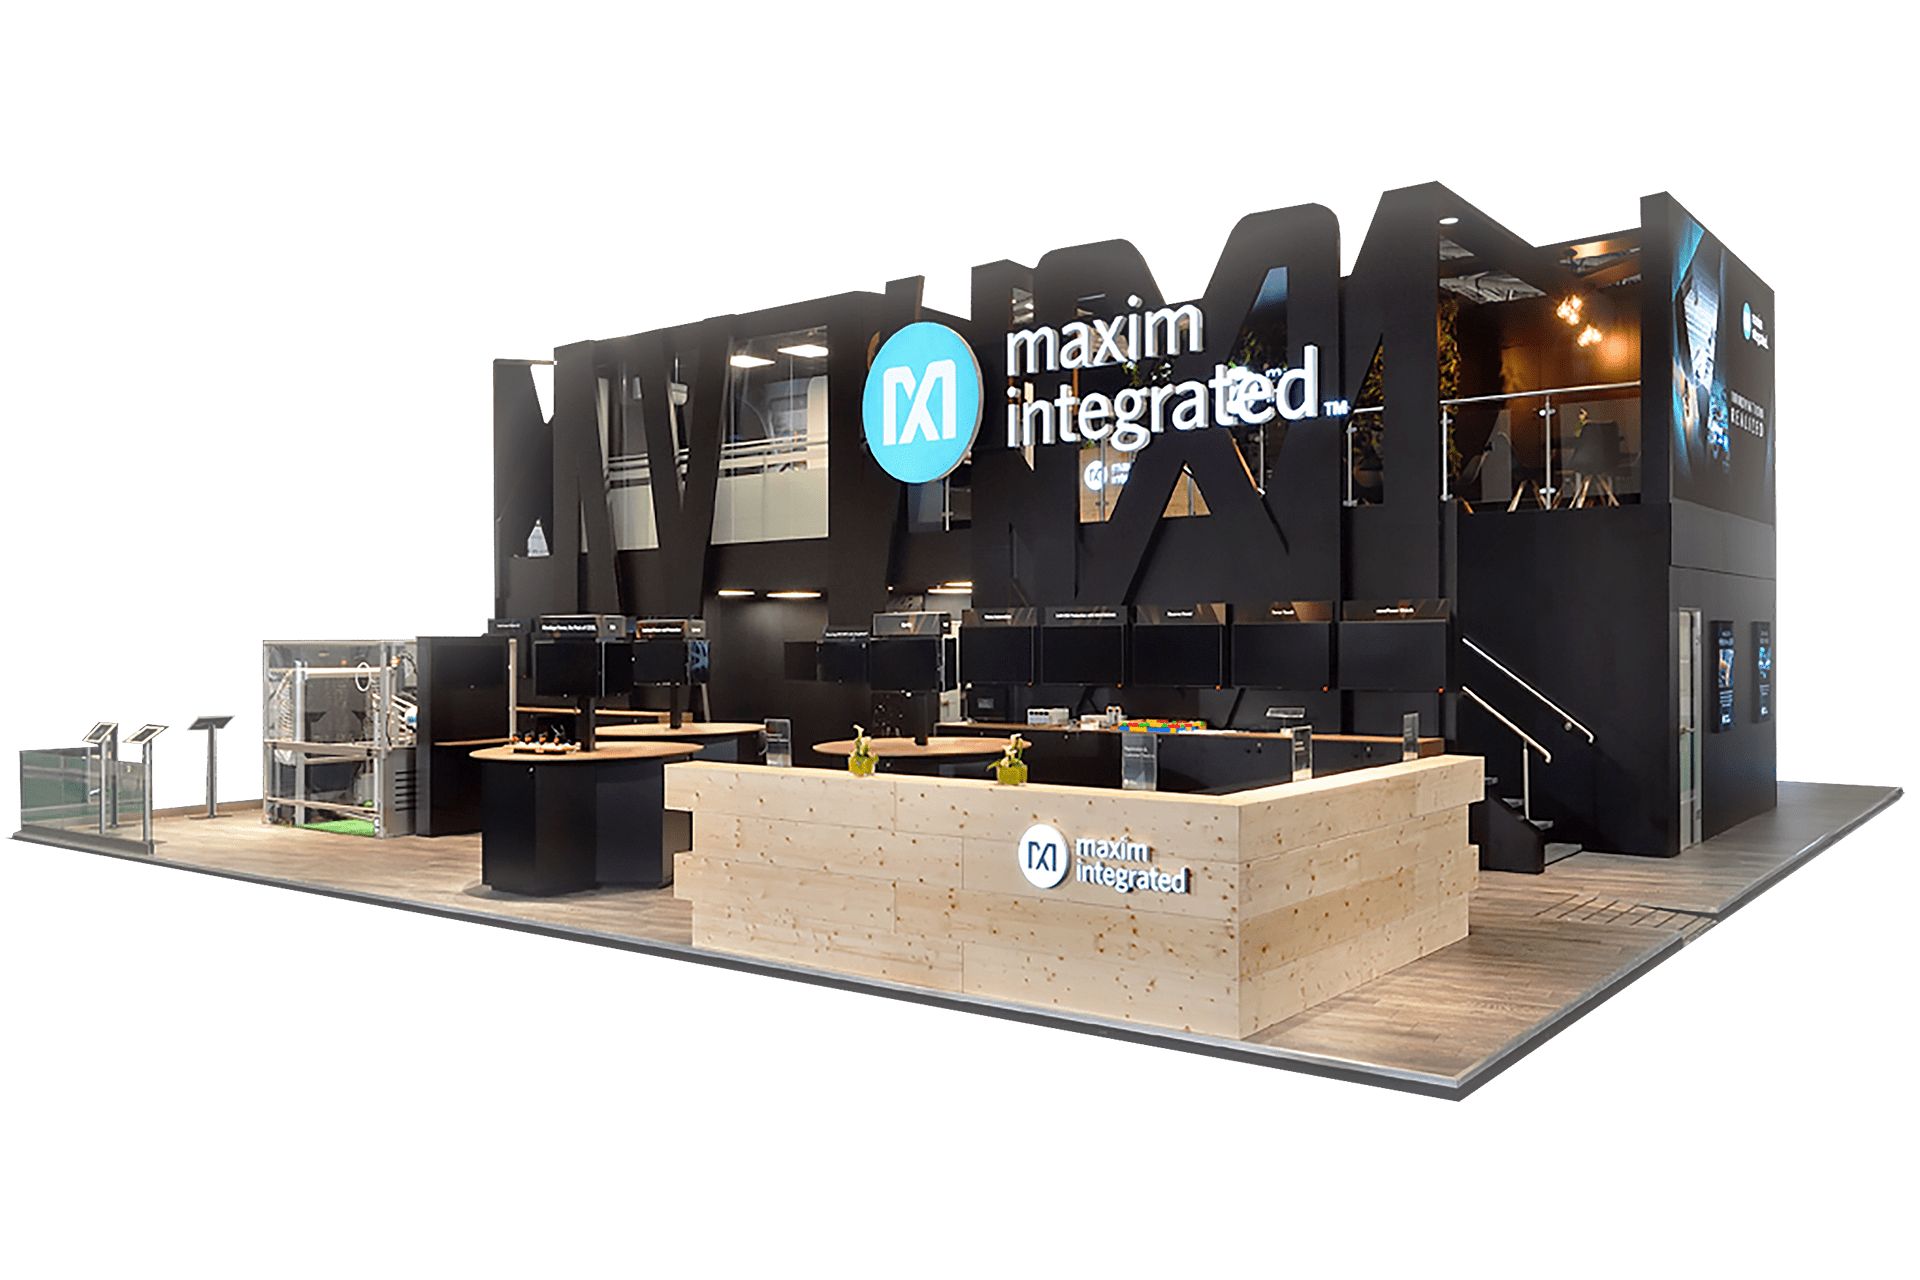 Maxim Integrated Trade Show Booth by Nebula Exhibits